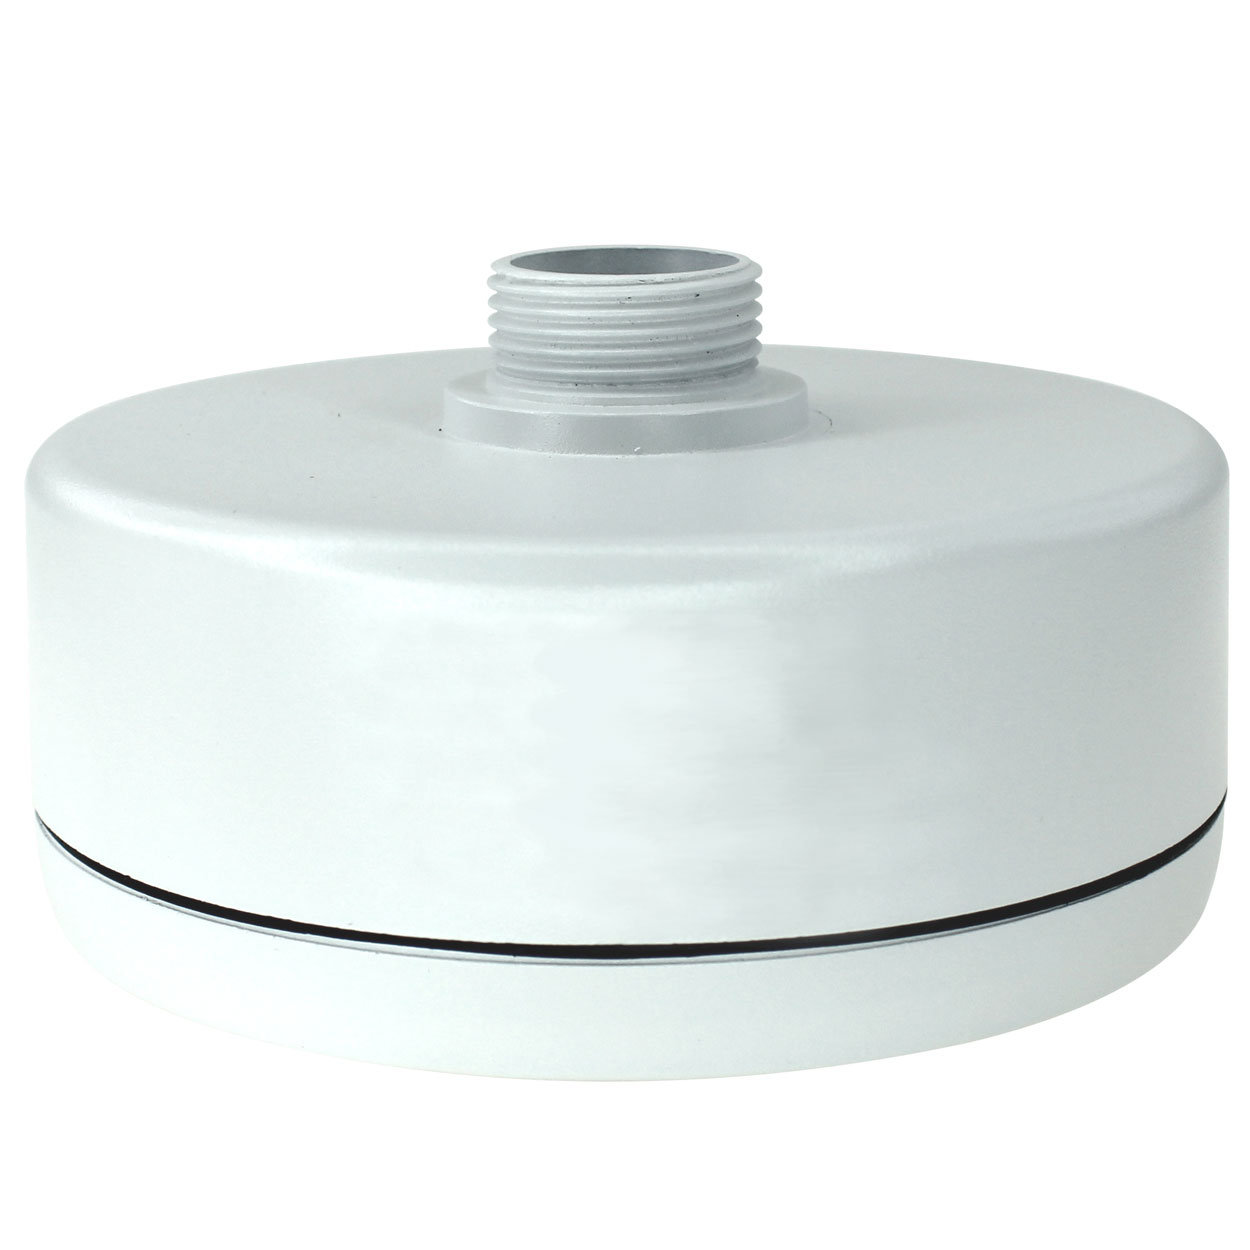 Junction Box for Bullet and Dome Cameras (IP-CAM-4292H3TF, 4292H3A, 4492H3D, 4292H3B, 4392H3HK, 4392H3K) 5.8 x 3.1 inches - White